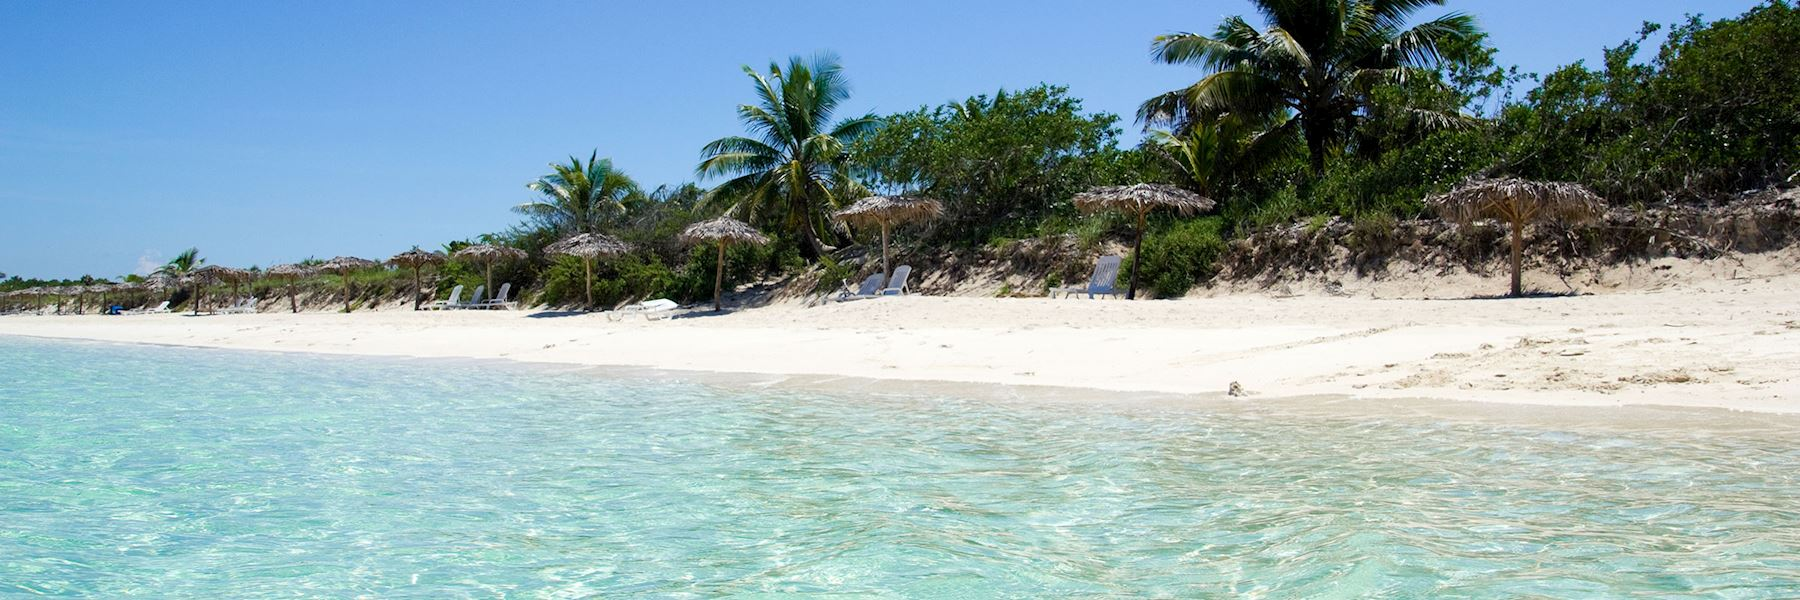 Visit Northern Cayes, Cuba